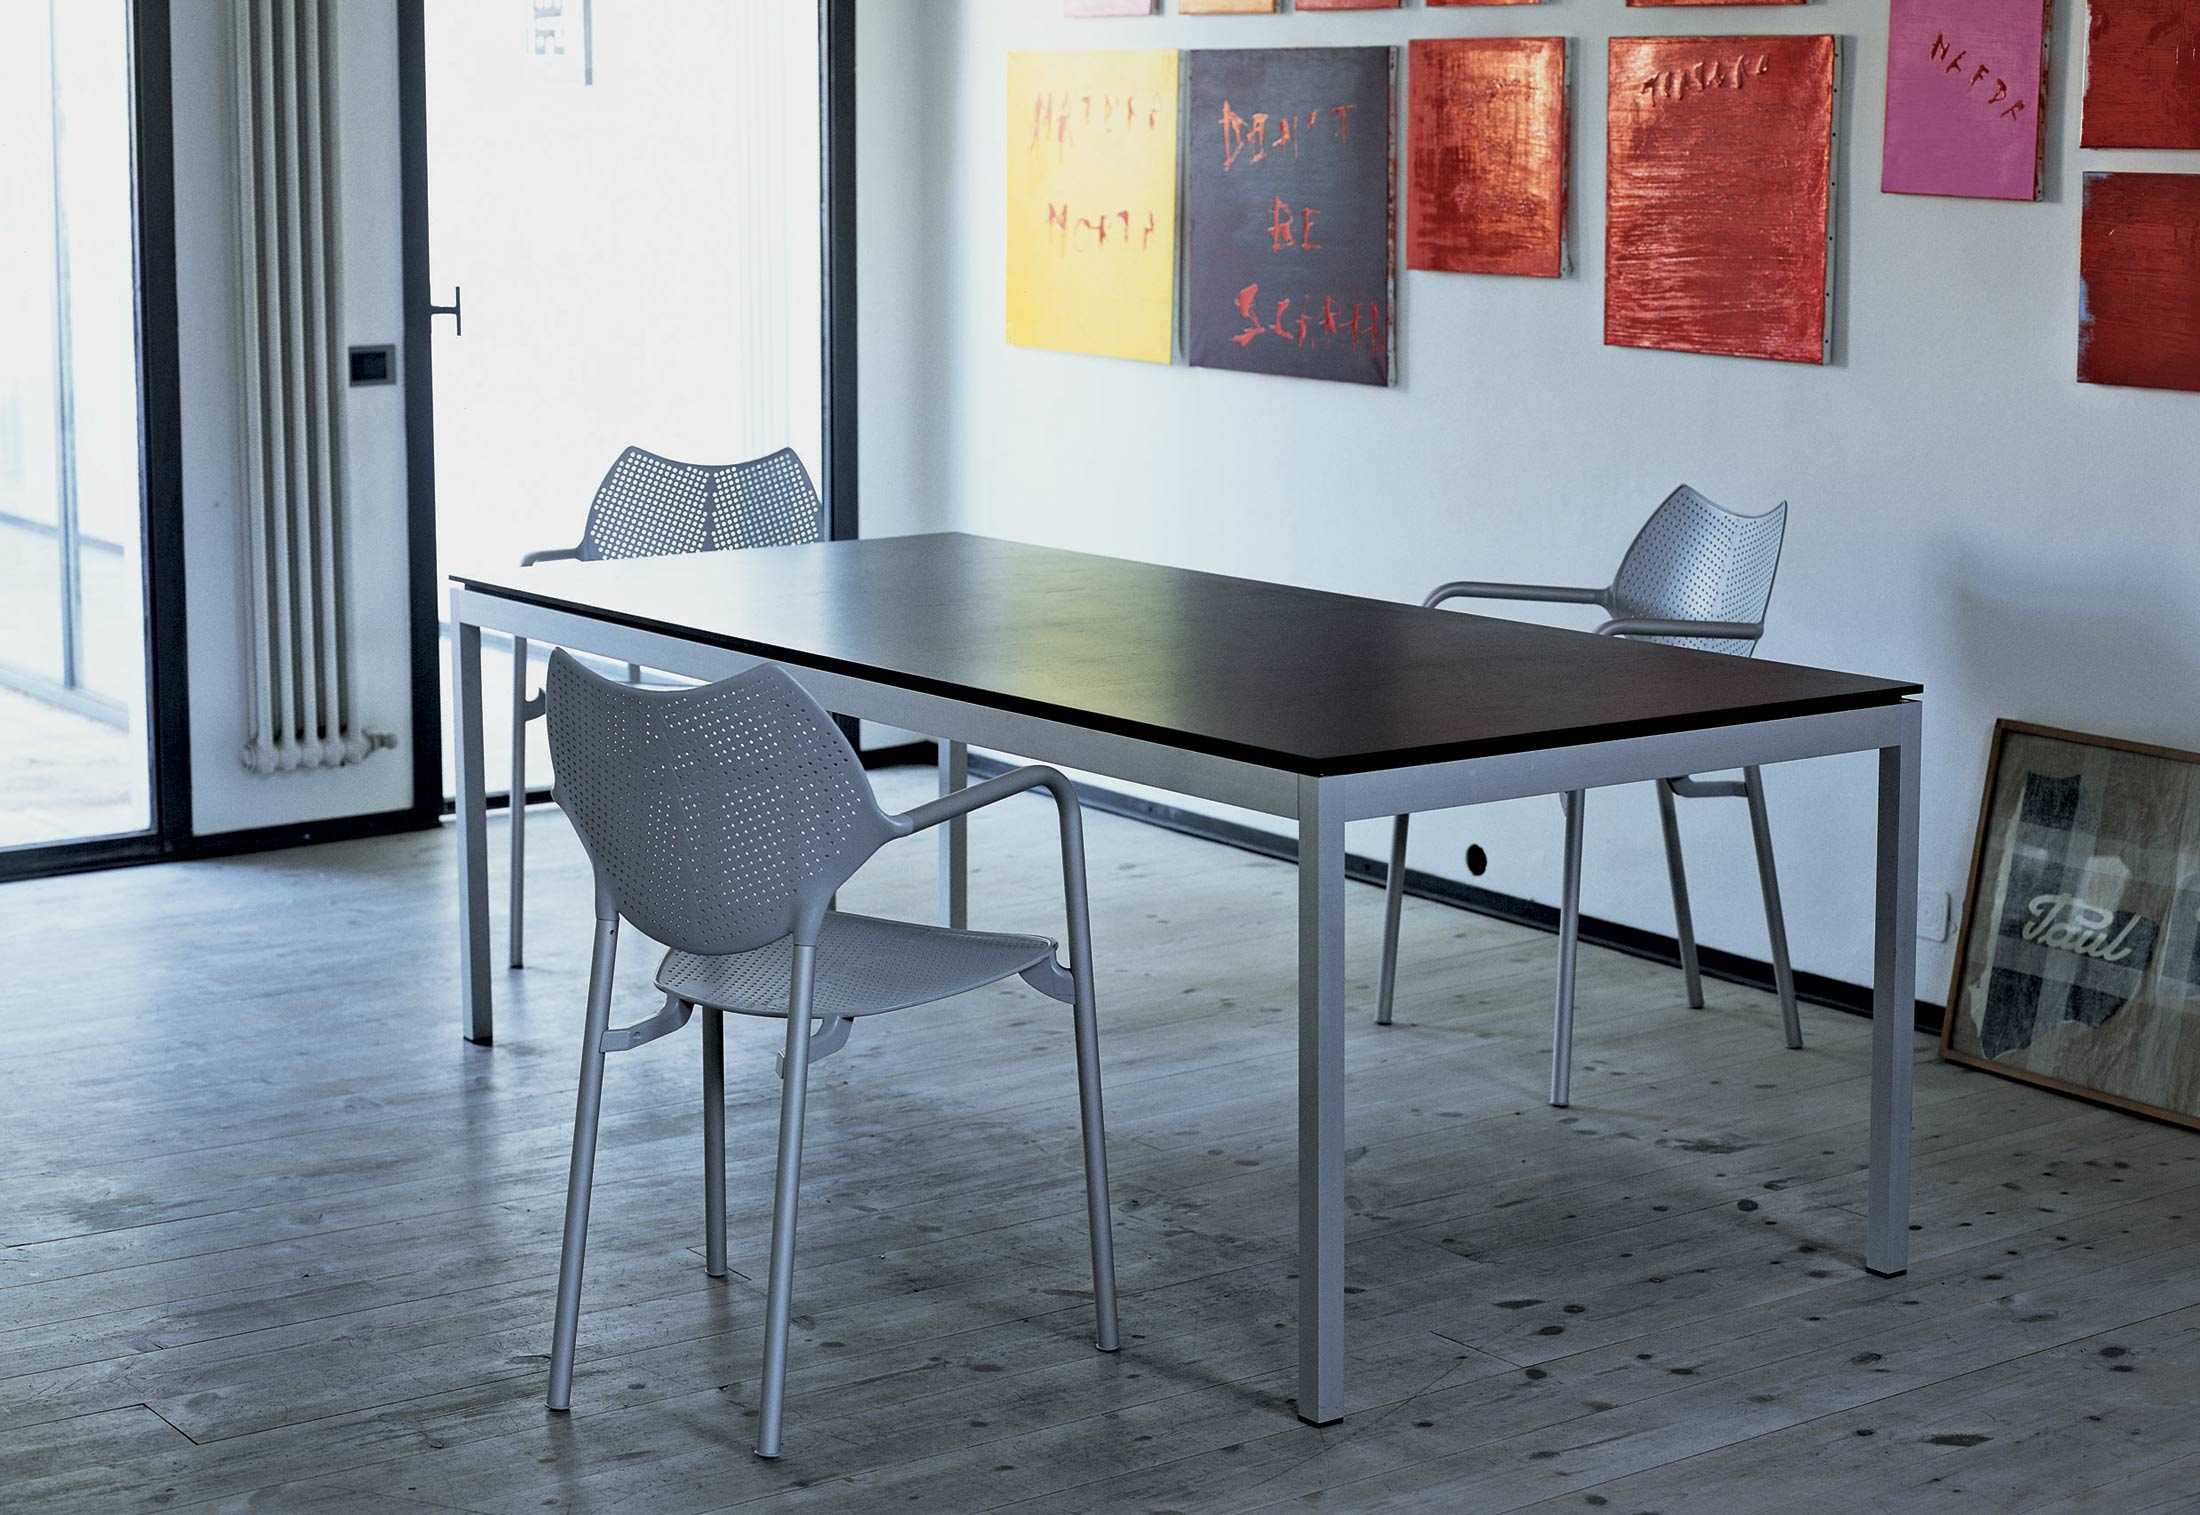 TIKKA TABLE by Driade | STYLEPARK